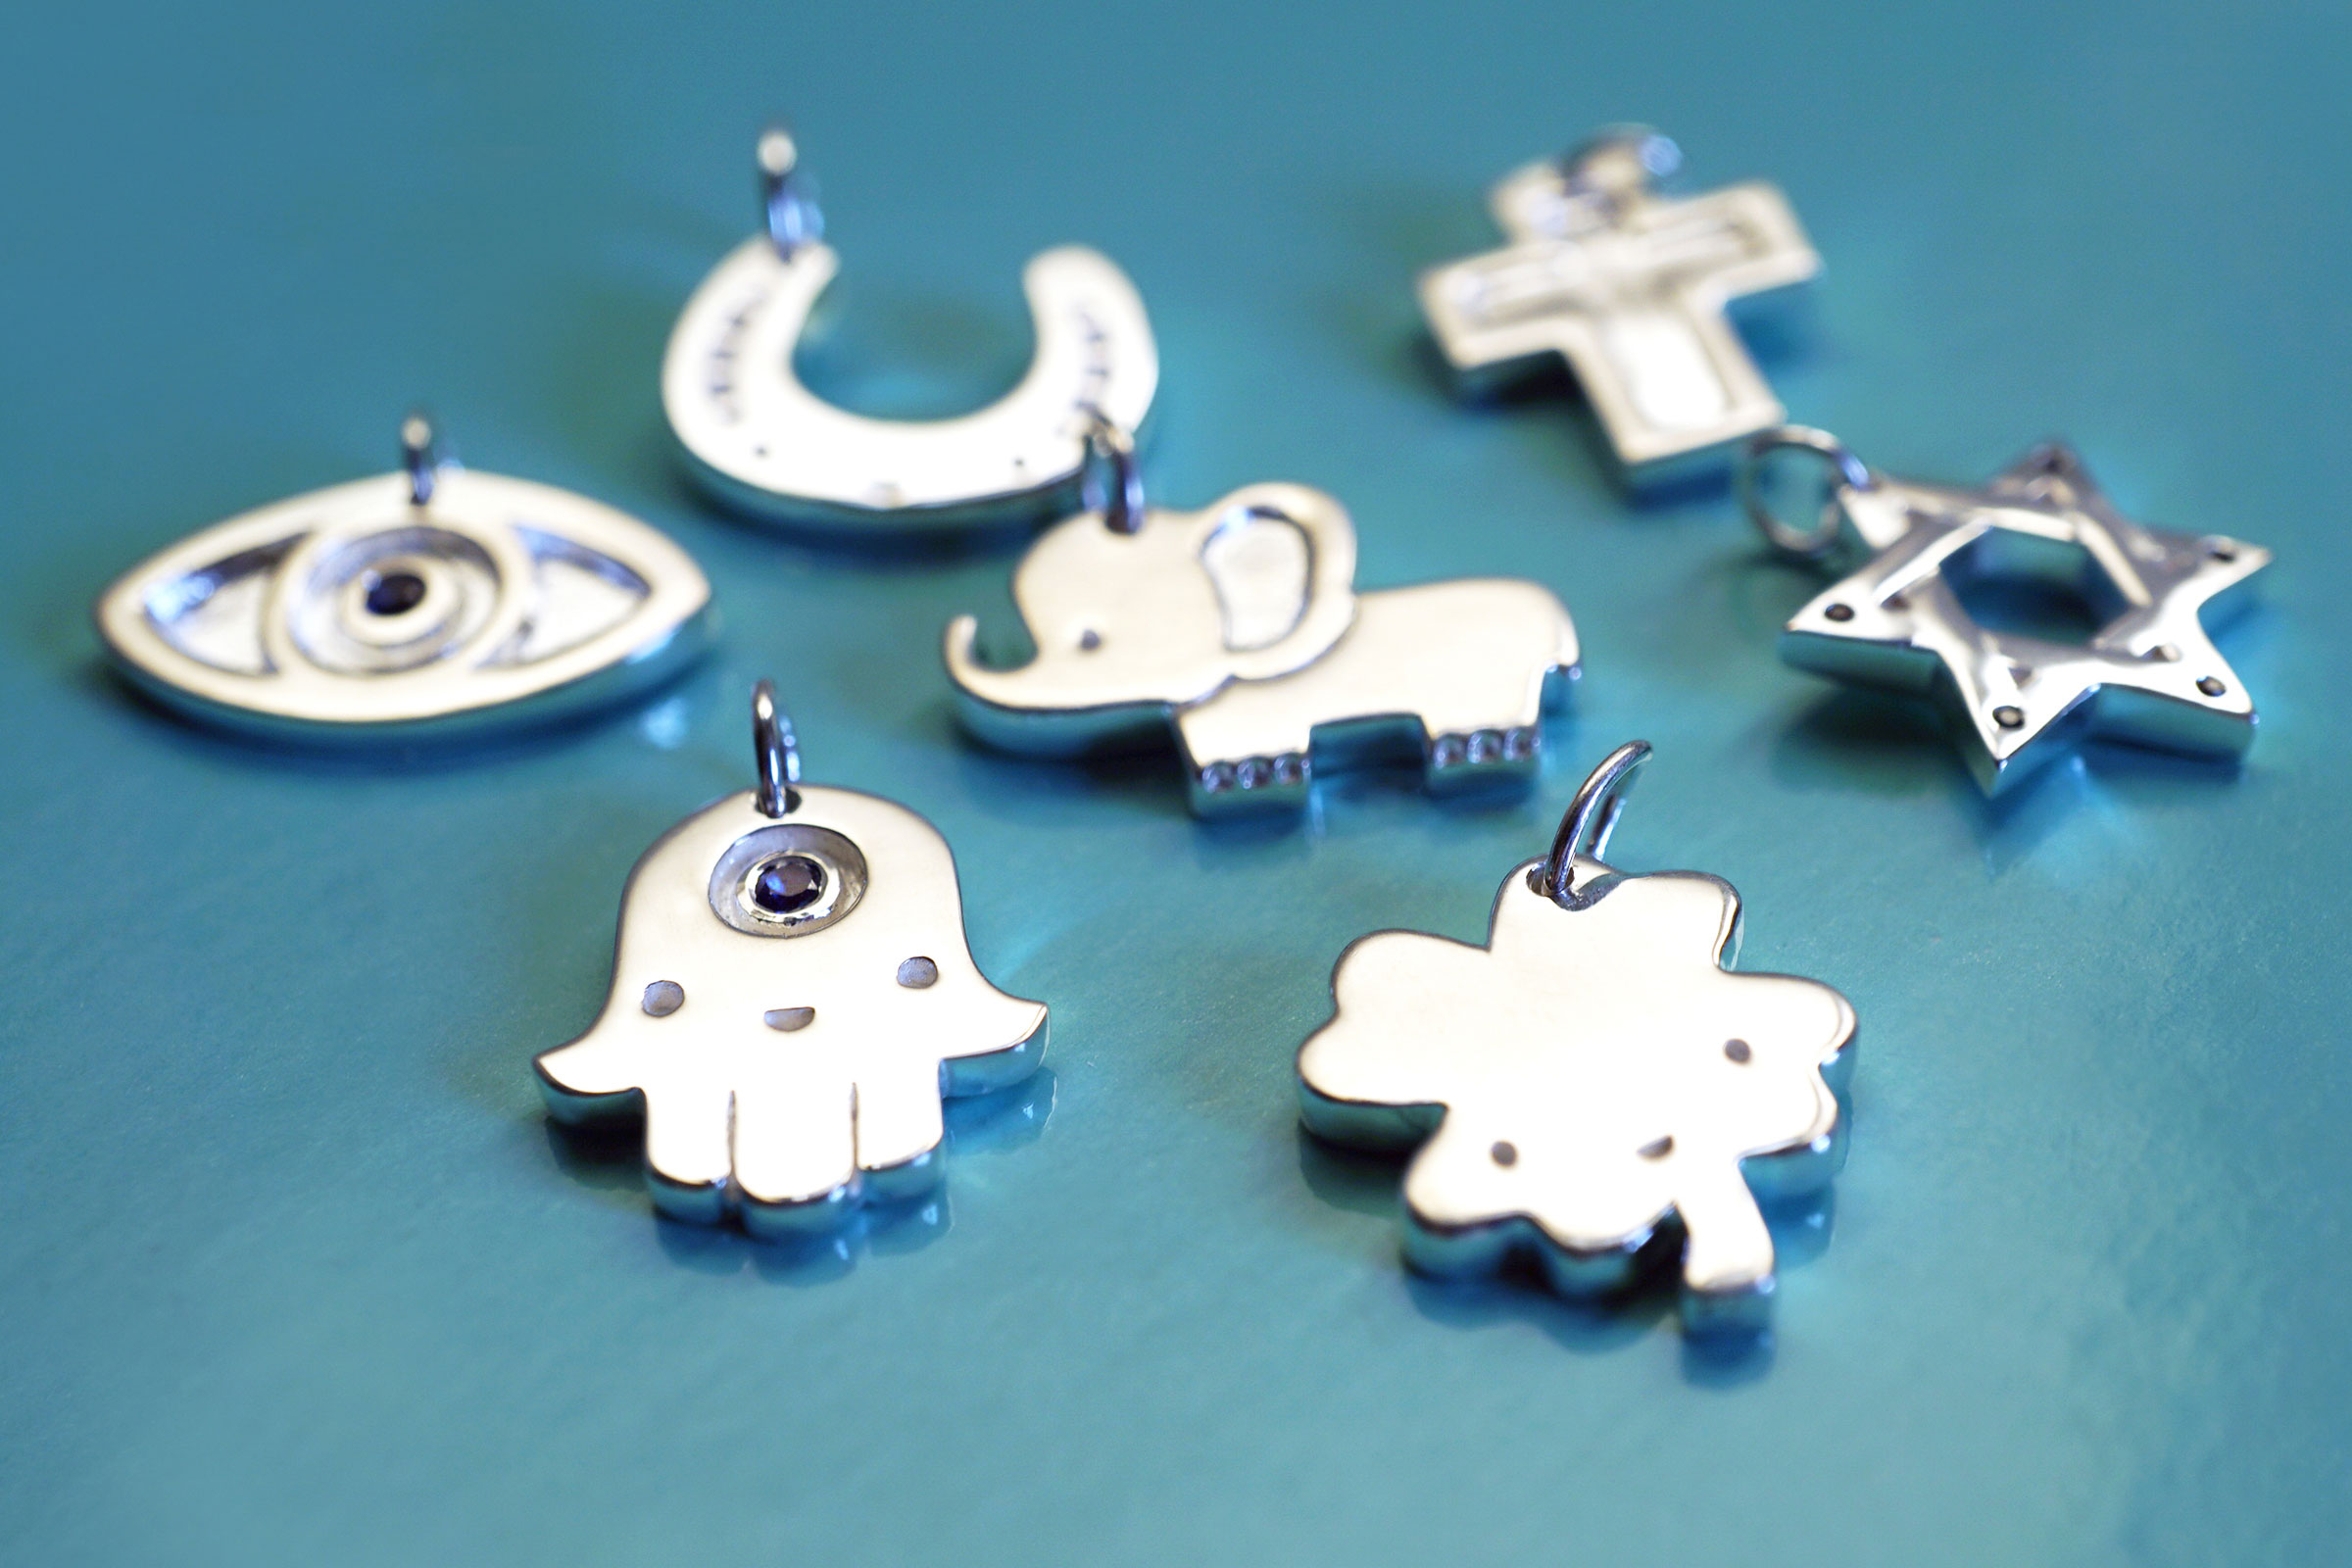 Consists of 7 symbolic and good luck charms, our new lucky Charms will bring lots of good fortune this holiday season and the coming new year.   Charms    $55 to $65